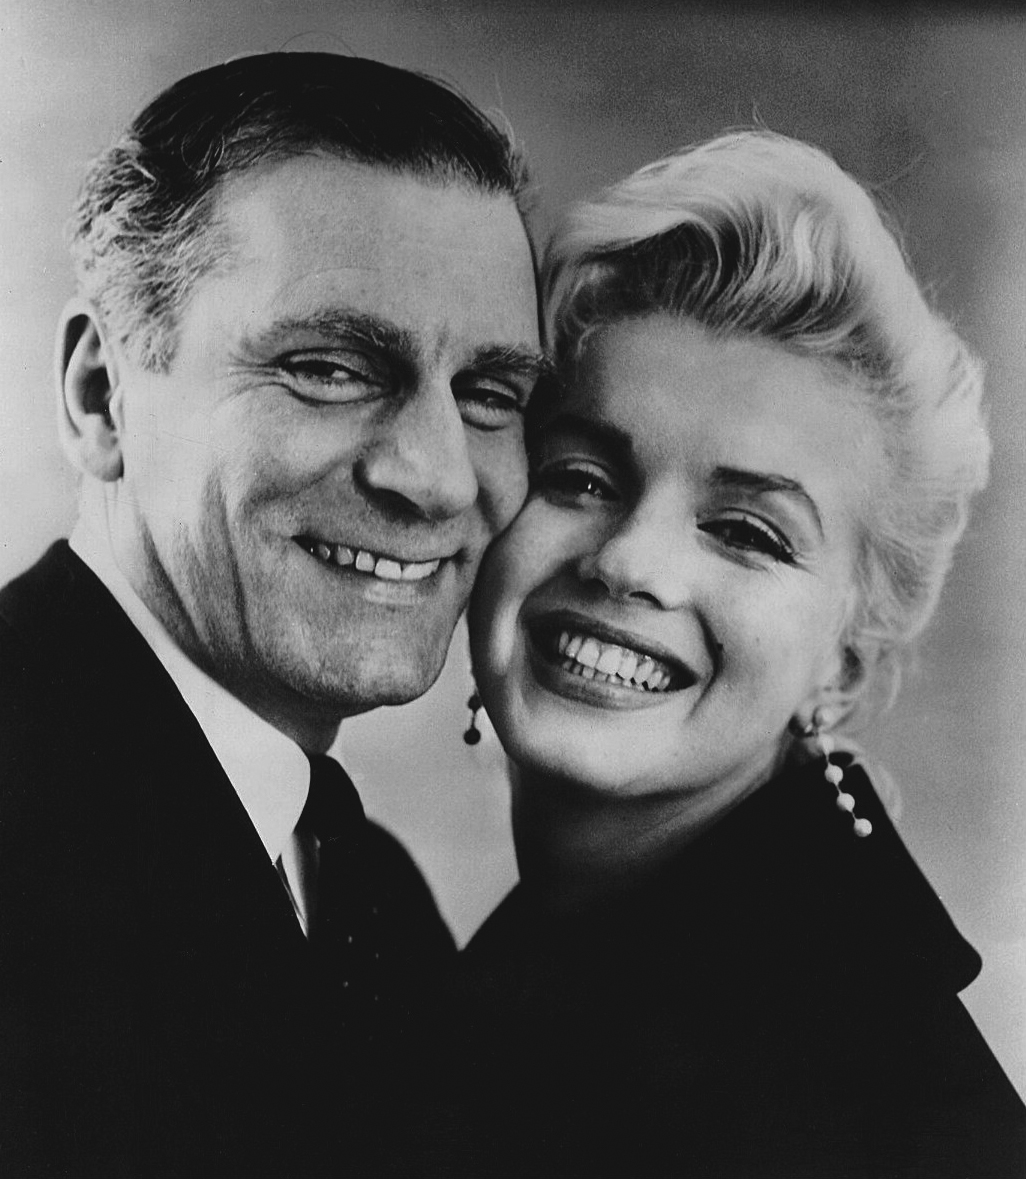 File:Laurence Olivier and Marilyn Monroe Prince and the Showgirl ...